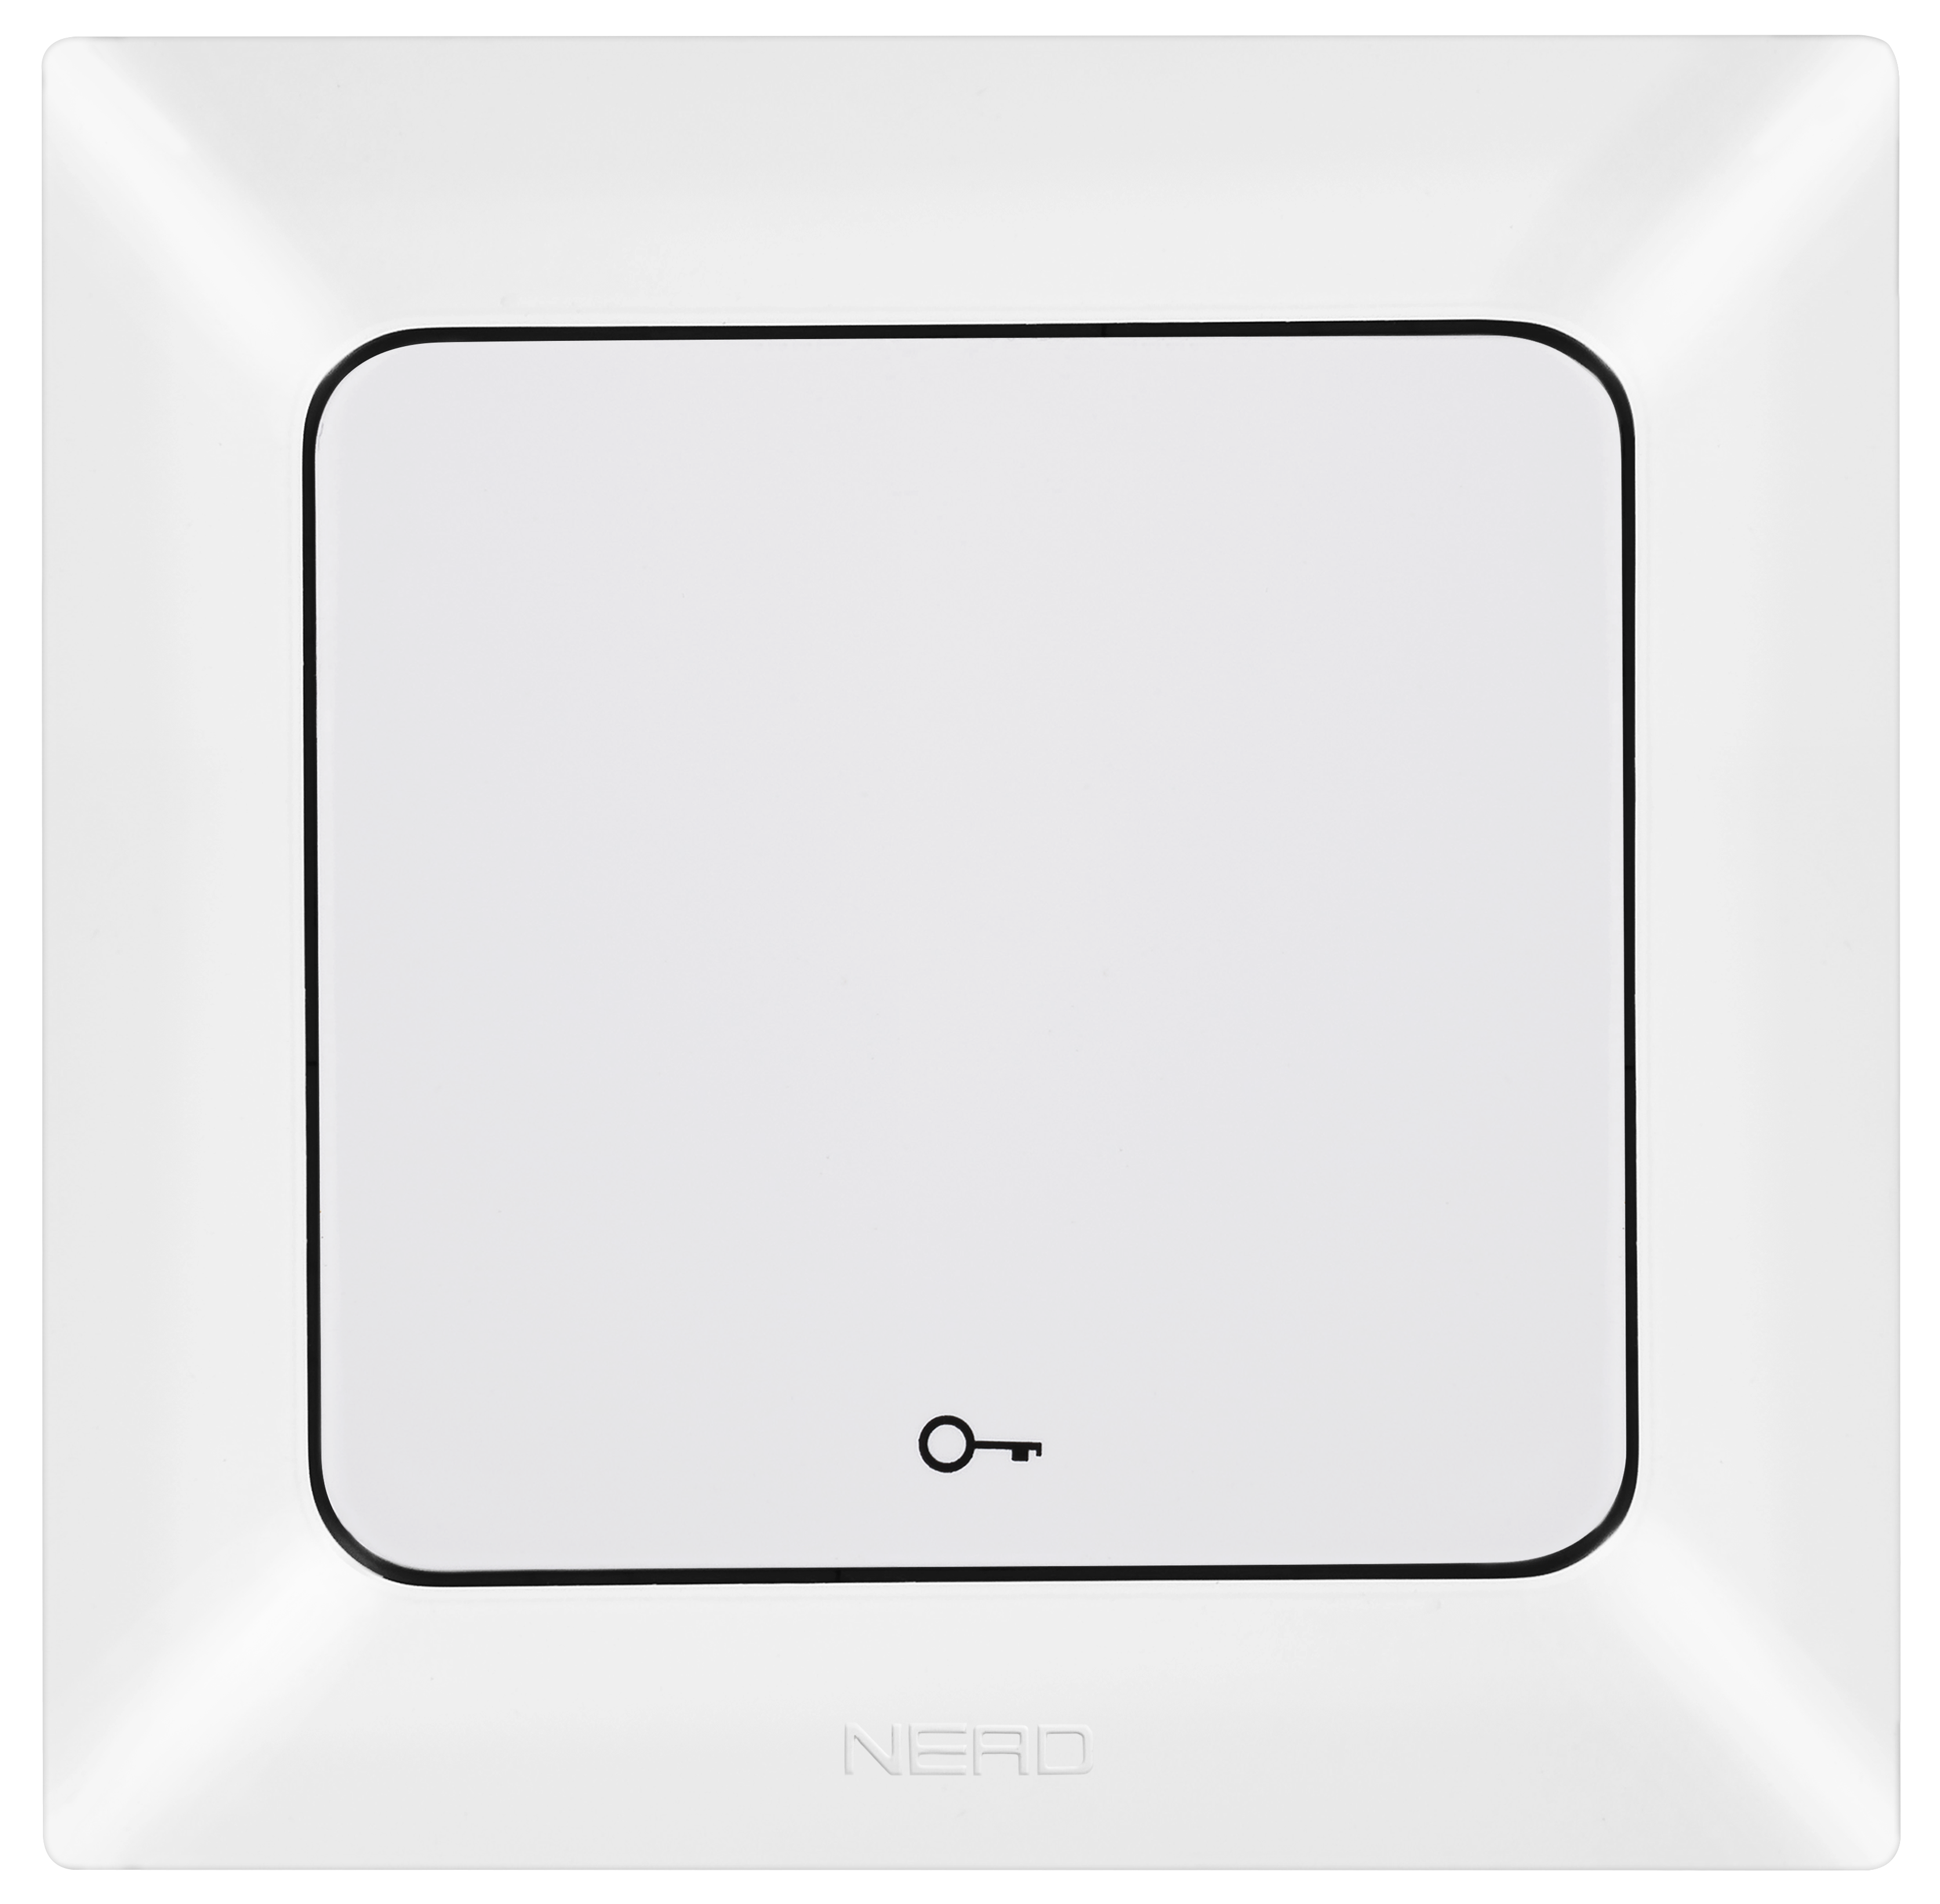 Push Button With Key Symbol / 93-110-13